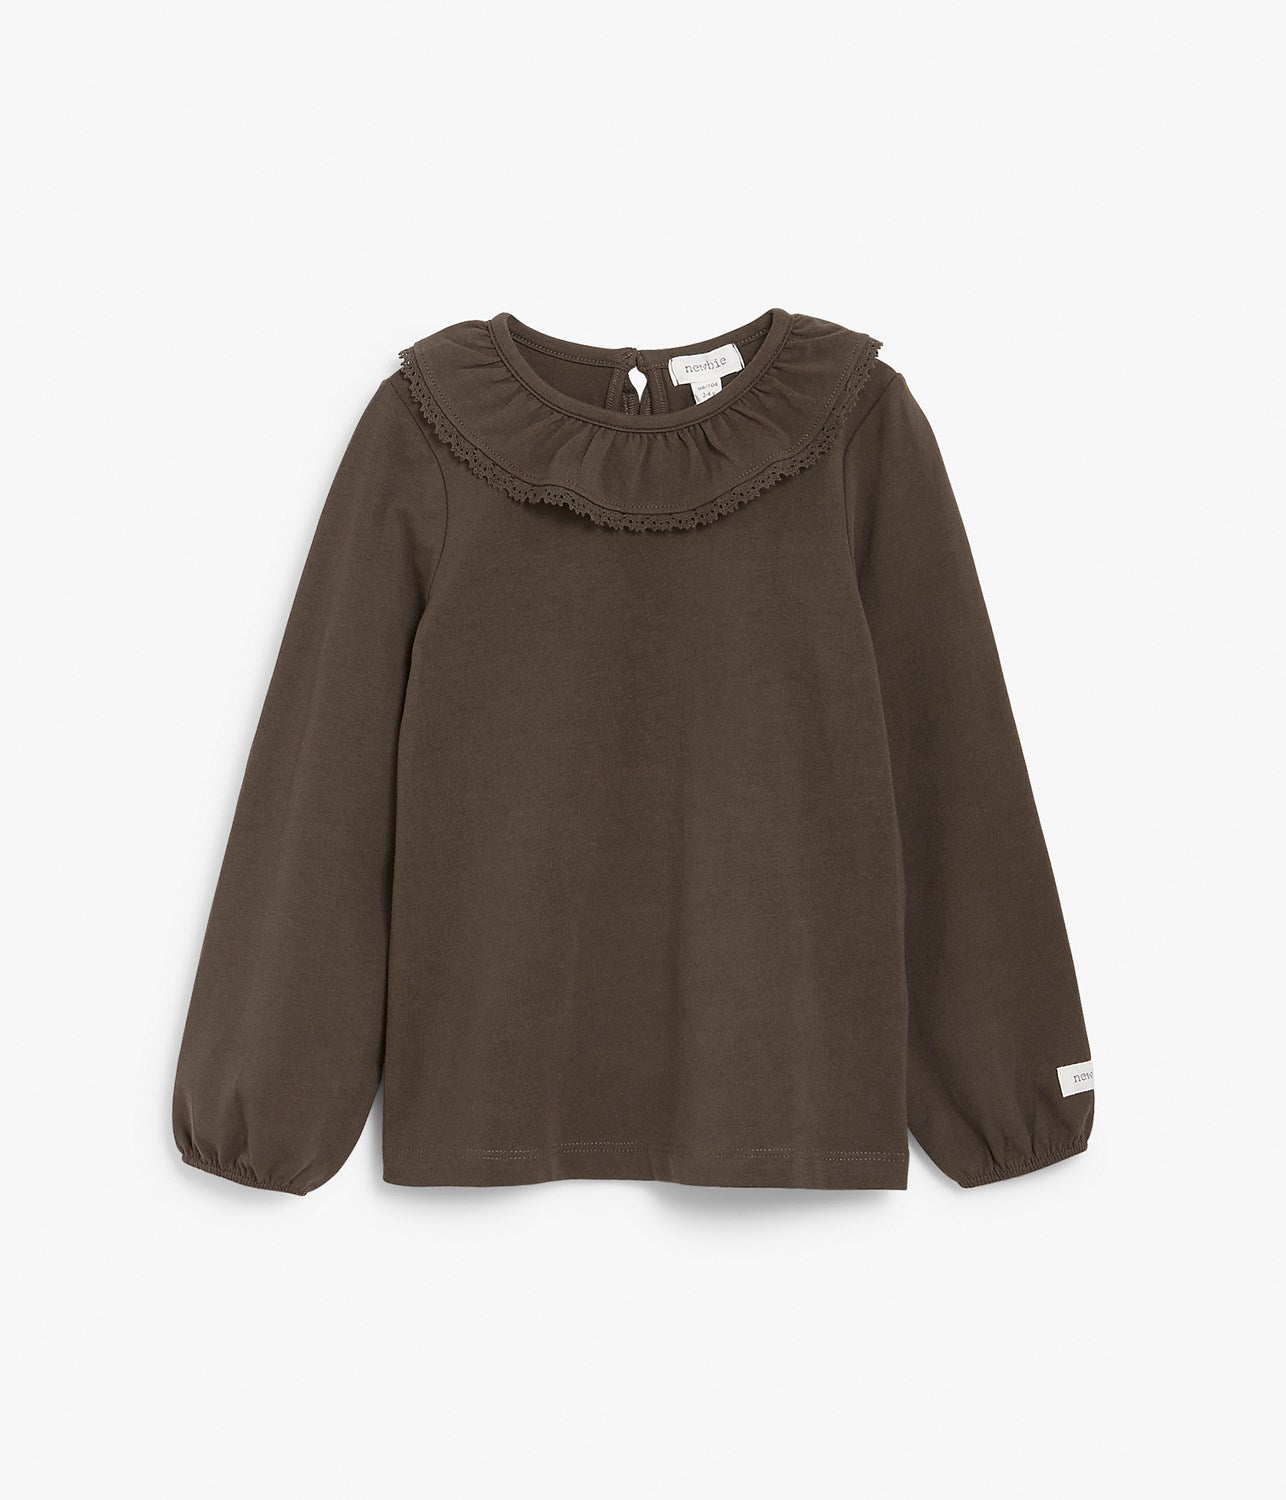 Kids frill collar top with lace